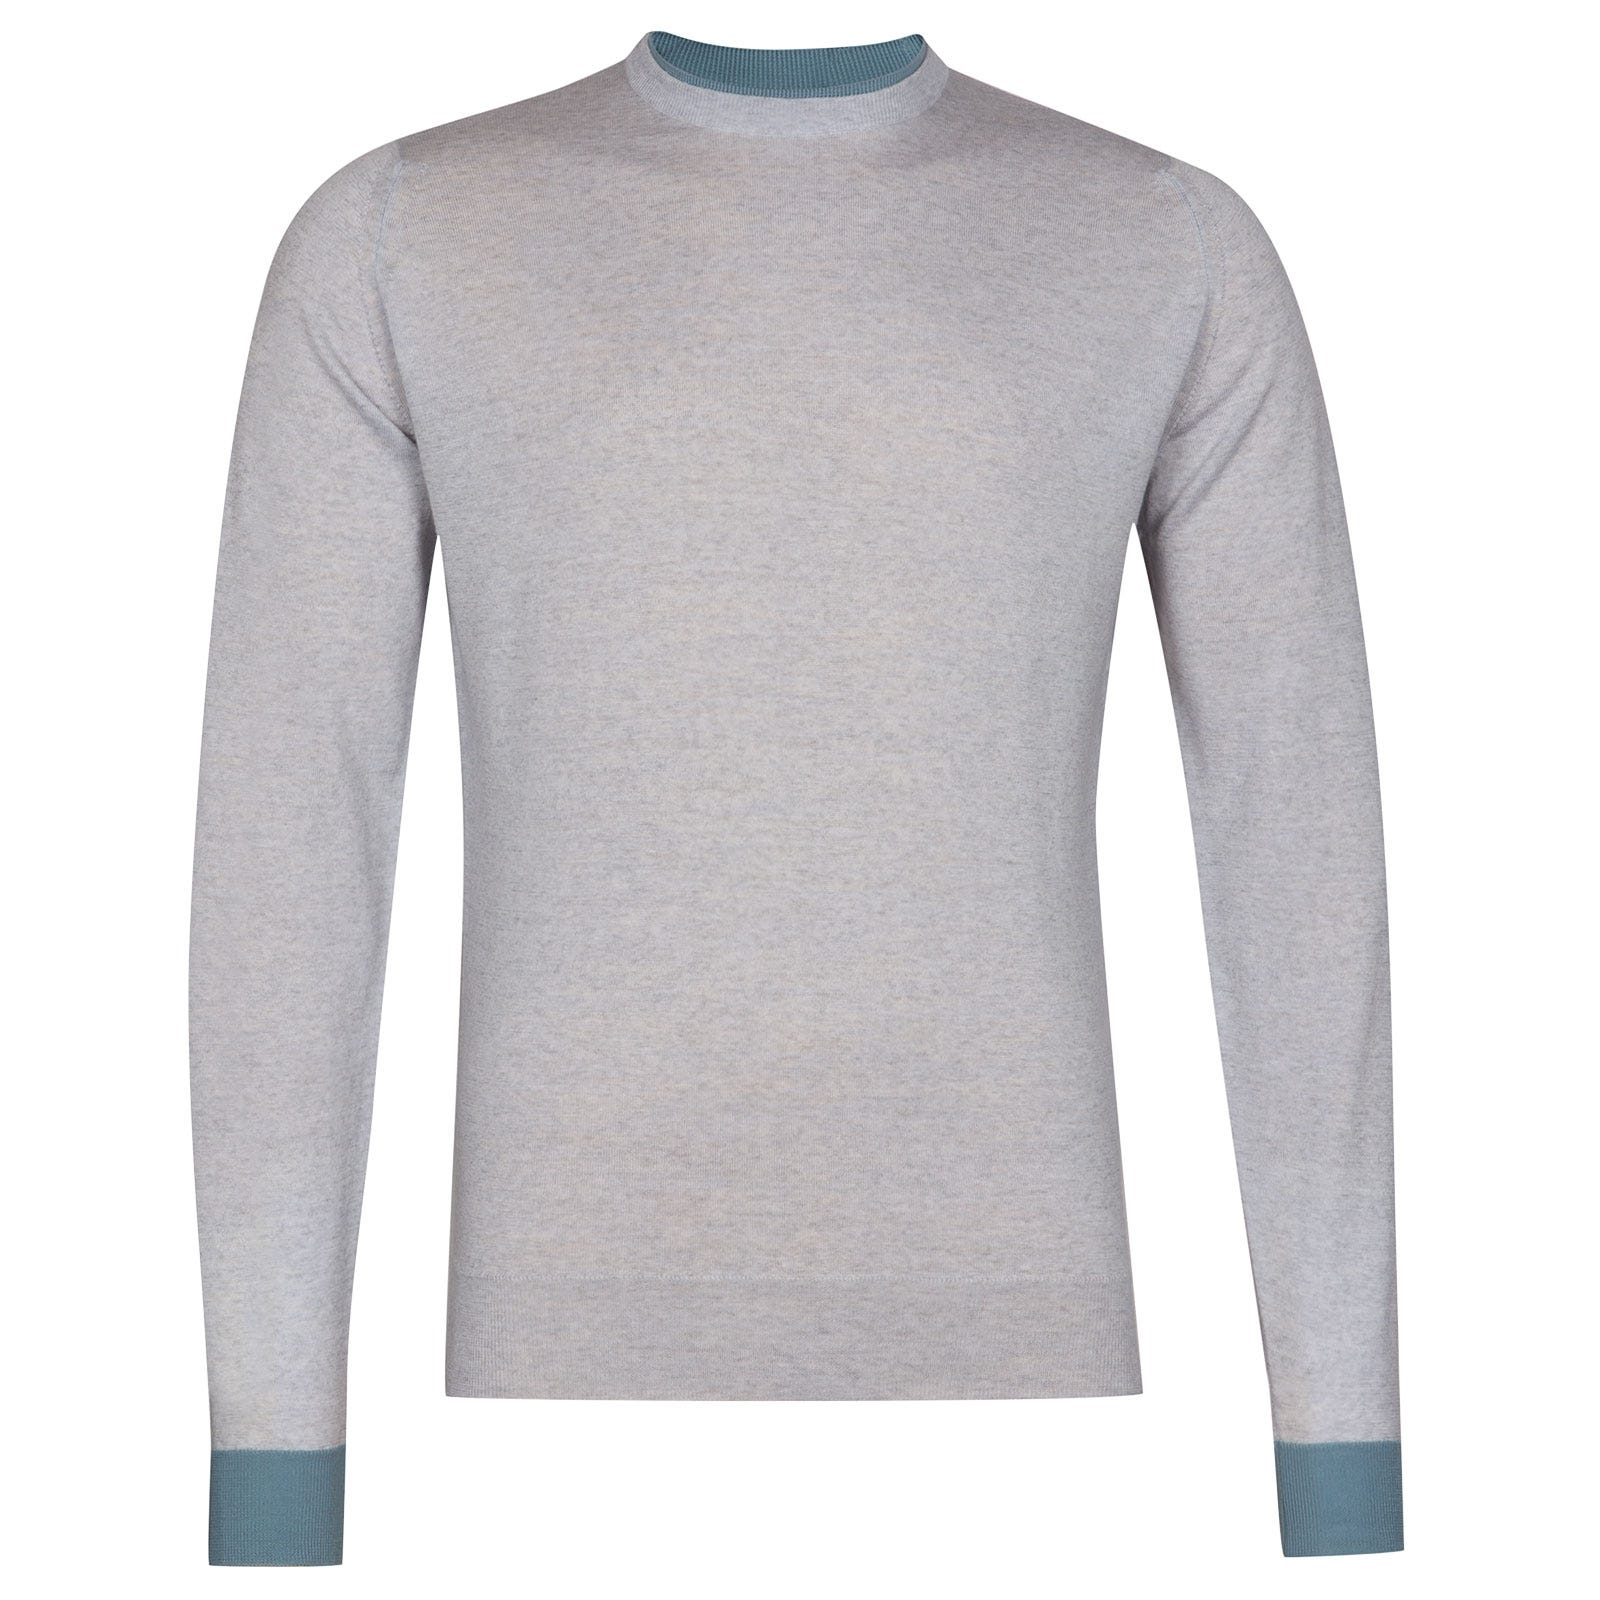 John Smedley kenn Merino Wool Pullover in Bardot Grey/Summit Blue-L